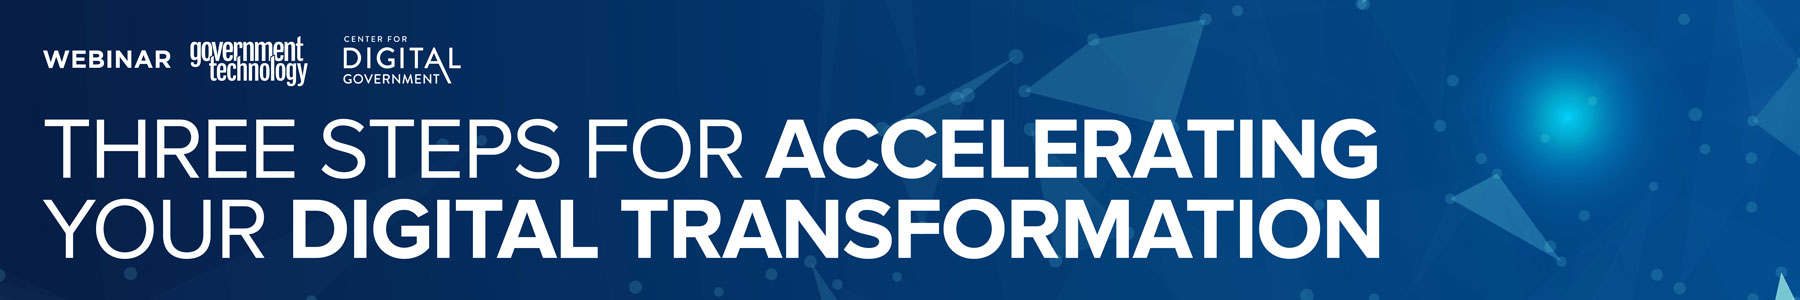 Three Steps for Accelerating Your Digital Transformation